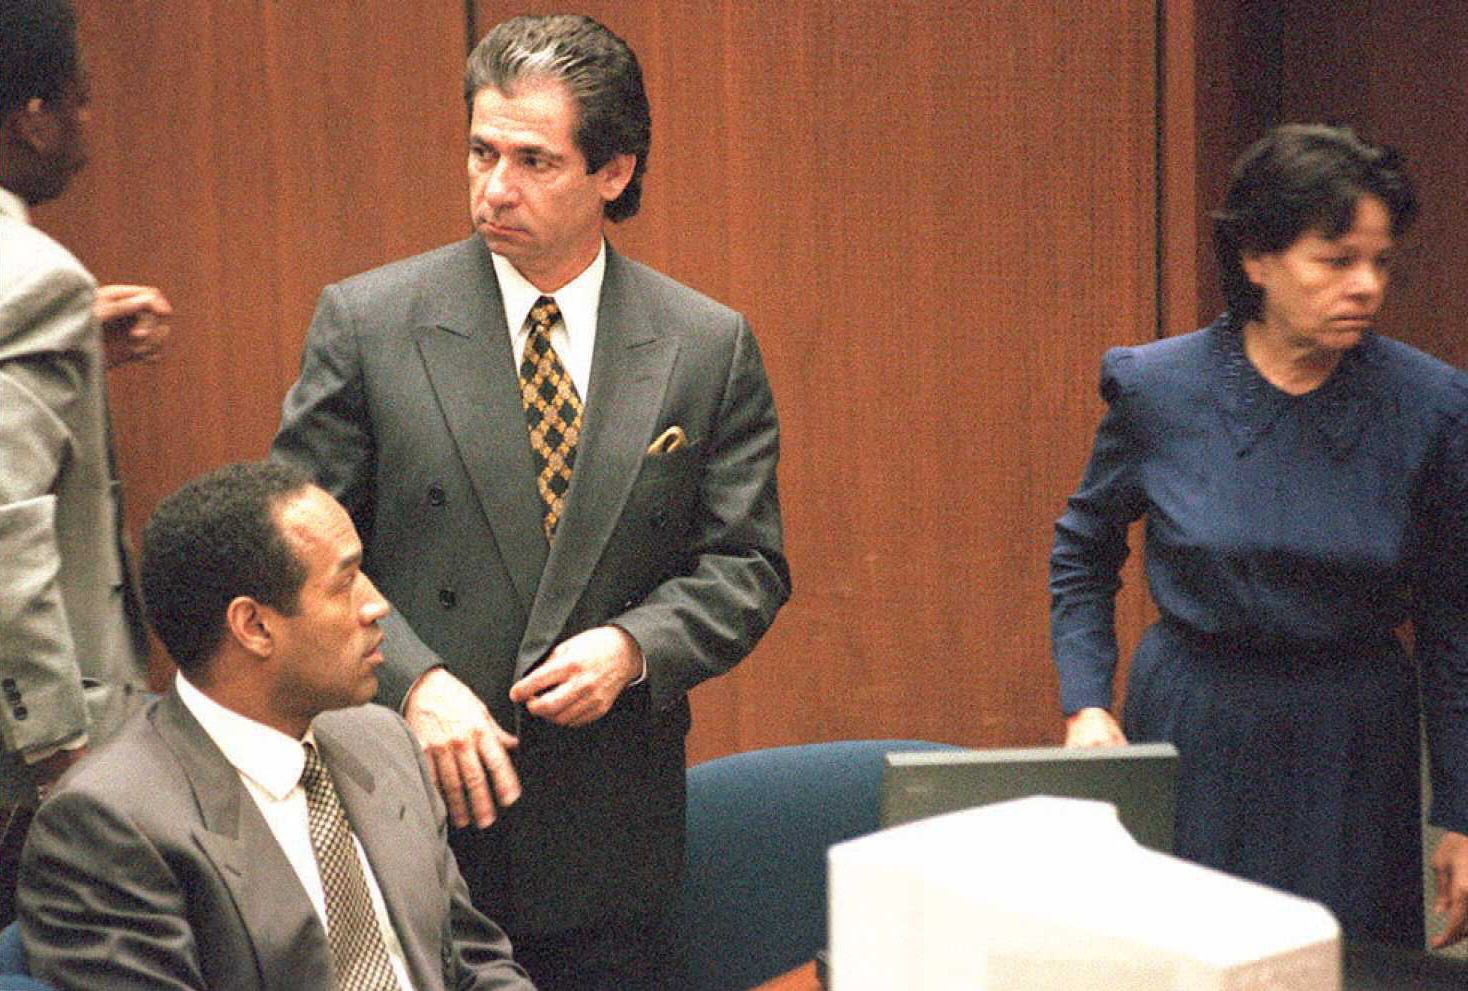 LOS ANGELES, CA - FEBRUARY 27:  Murder defendant O.J. Simpson(L, sitting) watches defense witness Rosa Lopez enter the court for a hearing on how her testimony will be heard 27 February. Superior Court Judge Lance Ito decided that Lopez's testimony will be videotaped without a jury present. Standing next to Simpson is Robert Kardashian. (COLOR KEY:Lopez has blue dress.)   AFP PHOTO  (Photo credit should read POO/AFP/Getty Images)